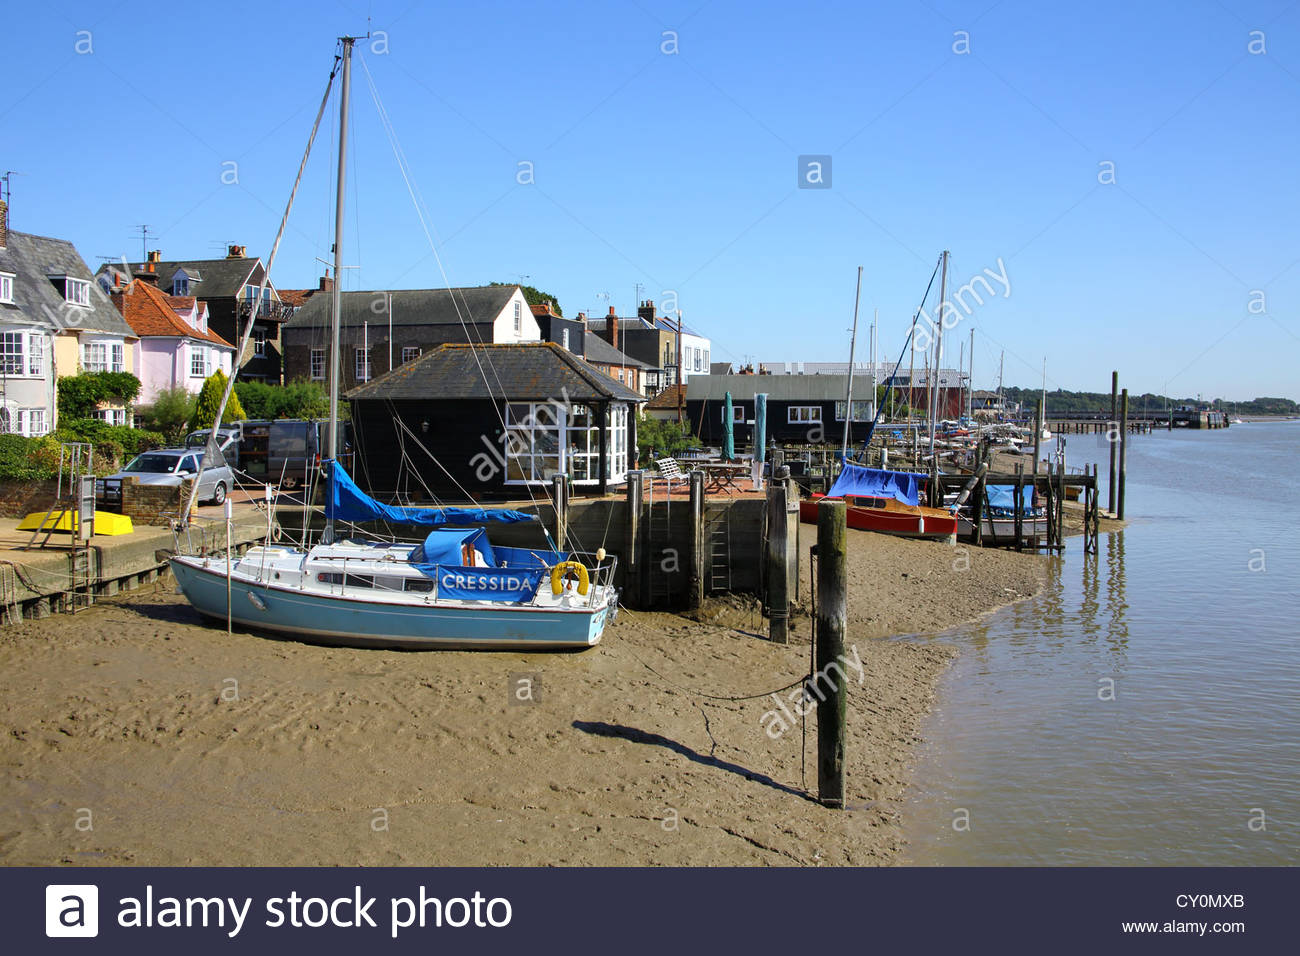 boats moored on the river colne at wivenhoe on the coast of essex - Stock Image